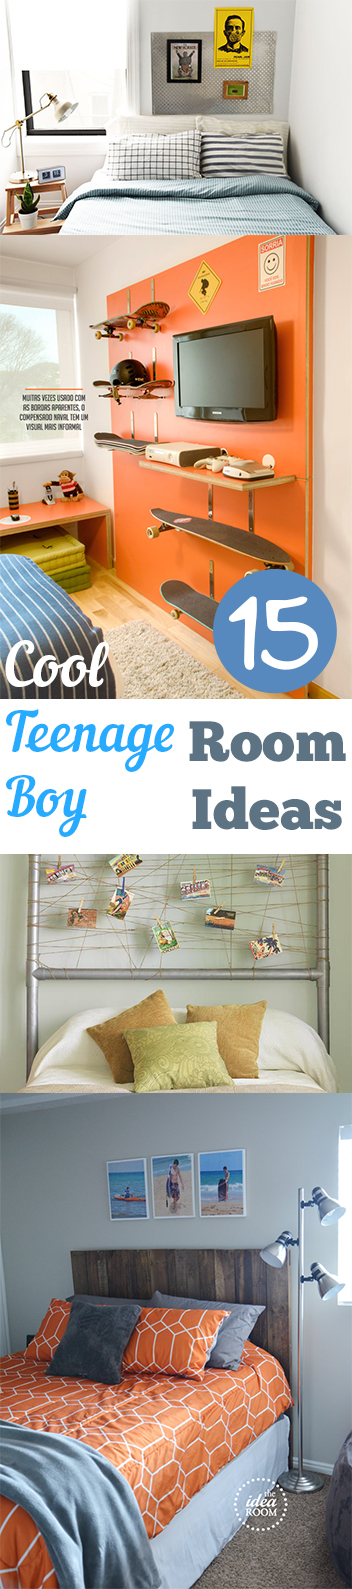 15-Cool-Teenage-Boy-Room-Ideas